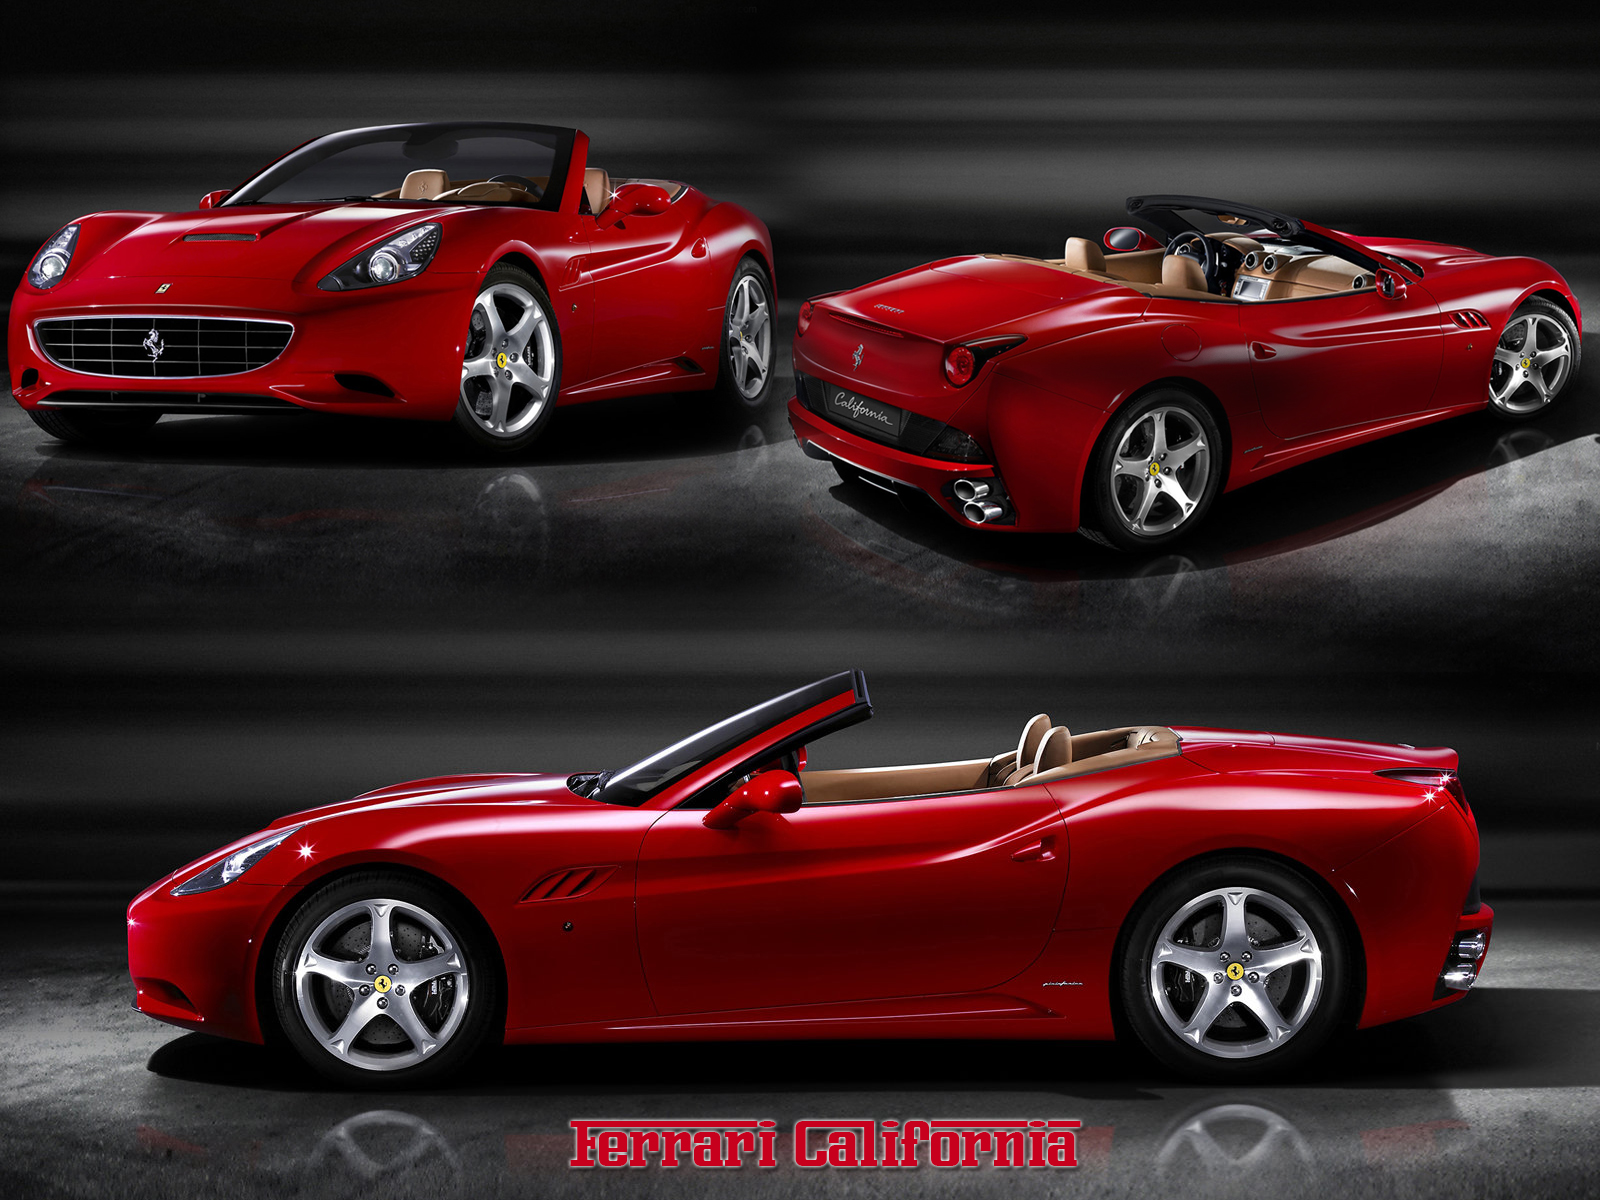 ferrari_california_2009_26596.jpg